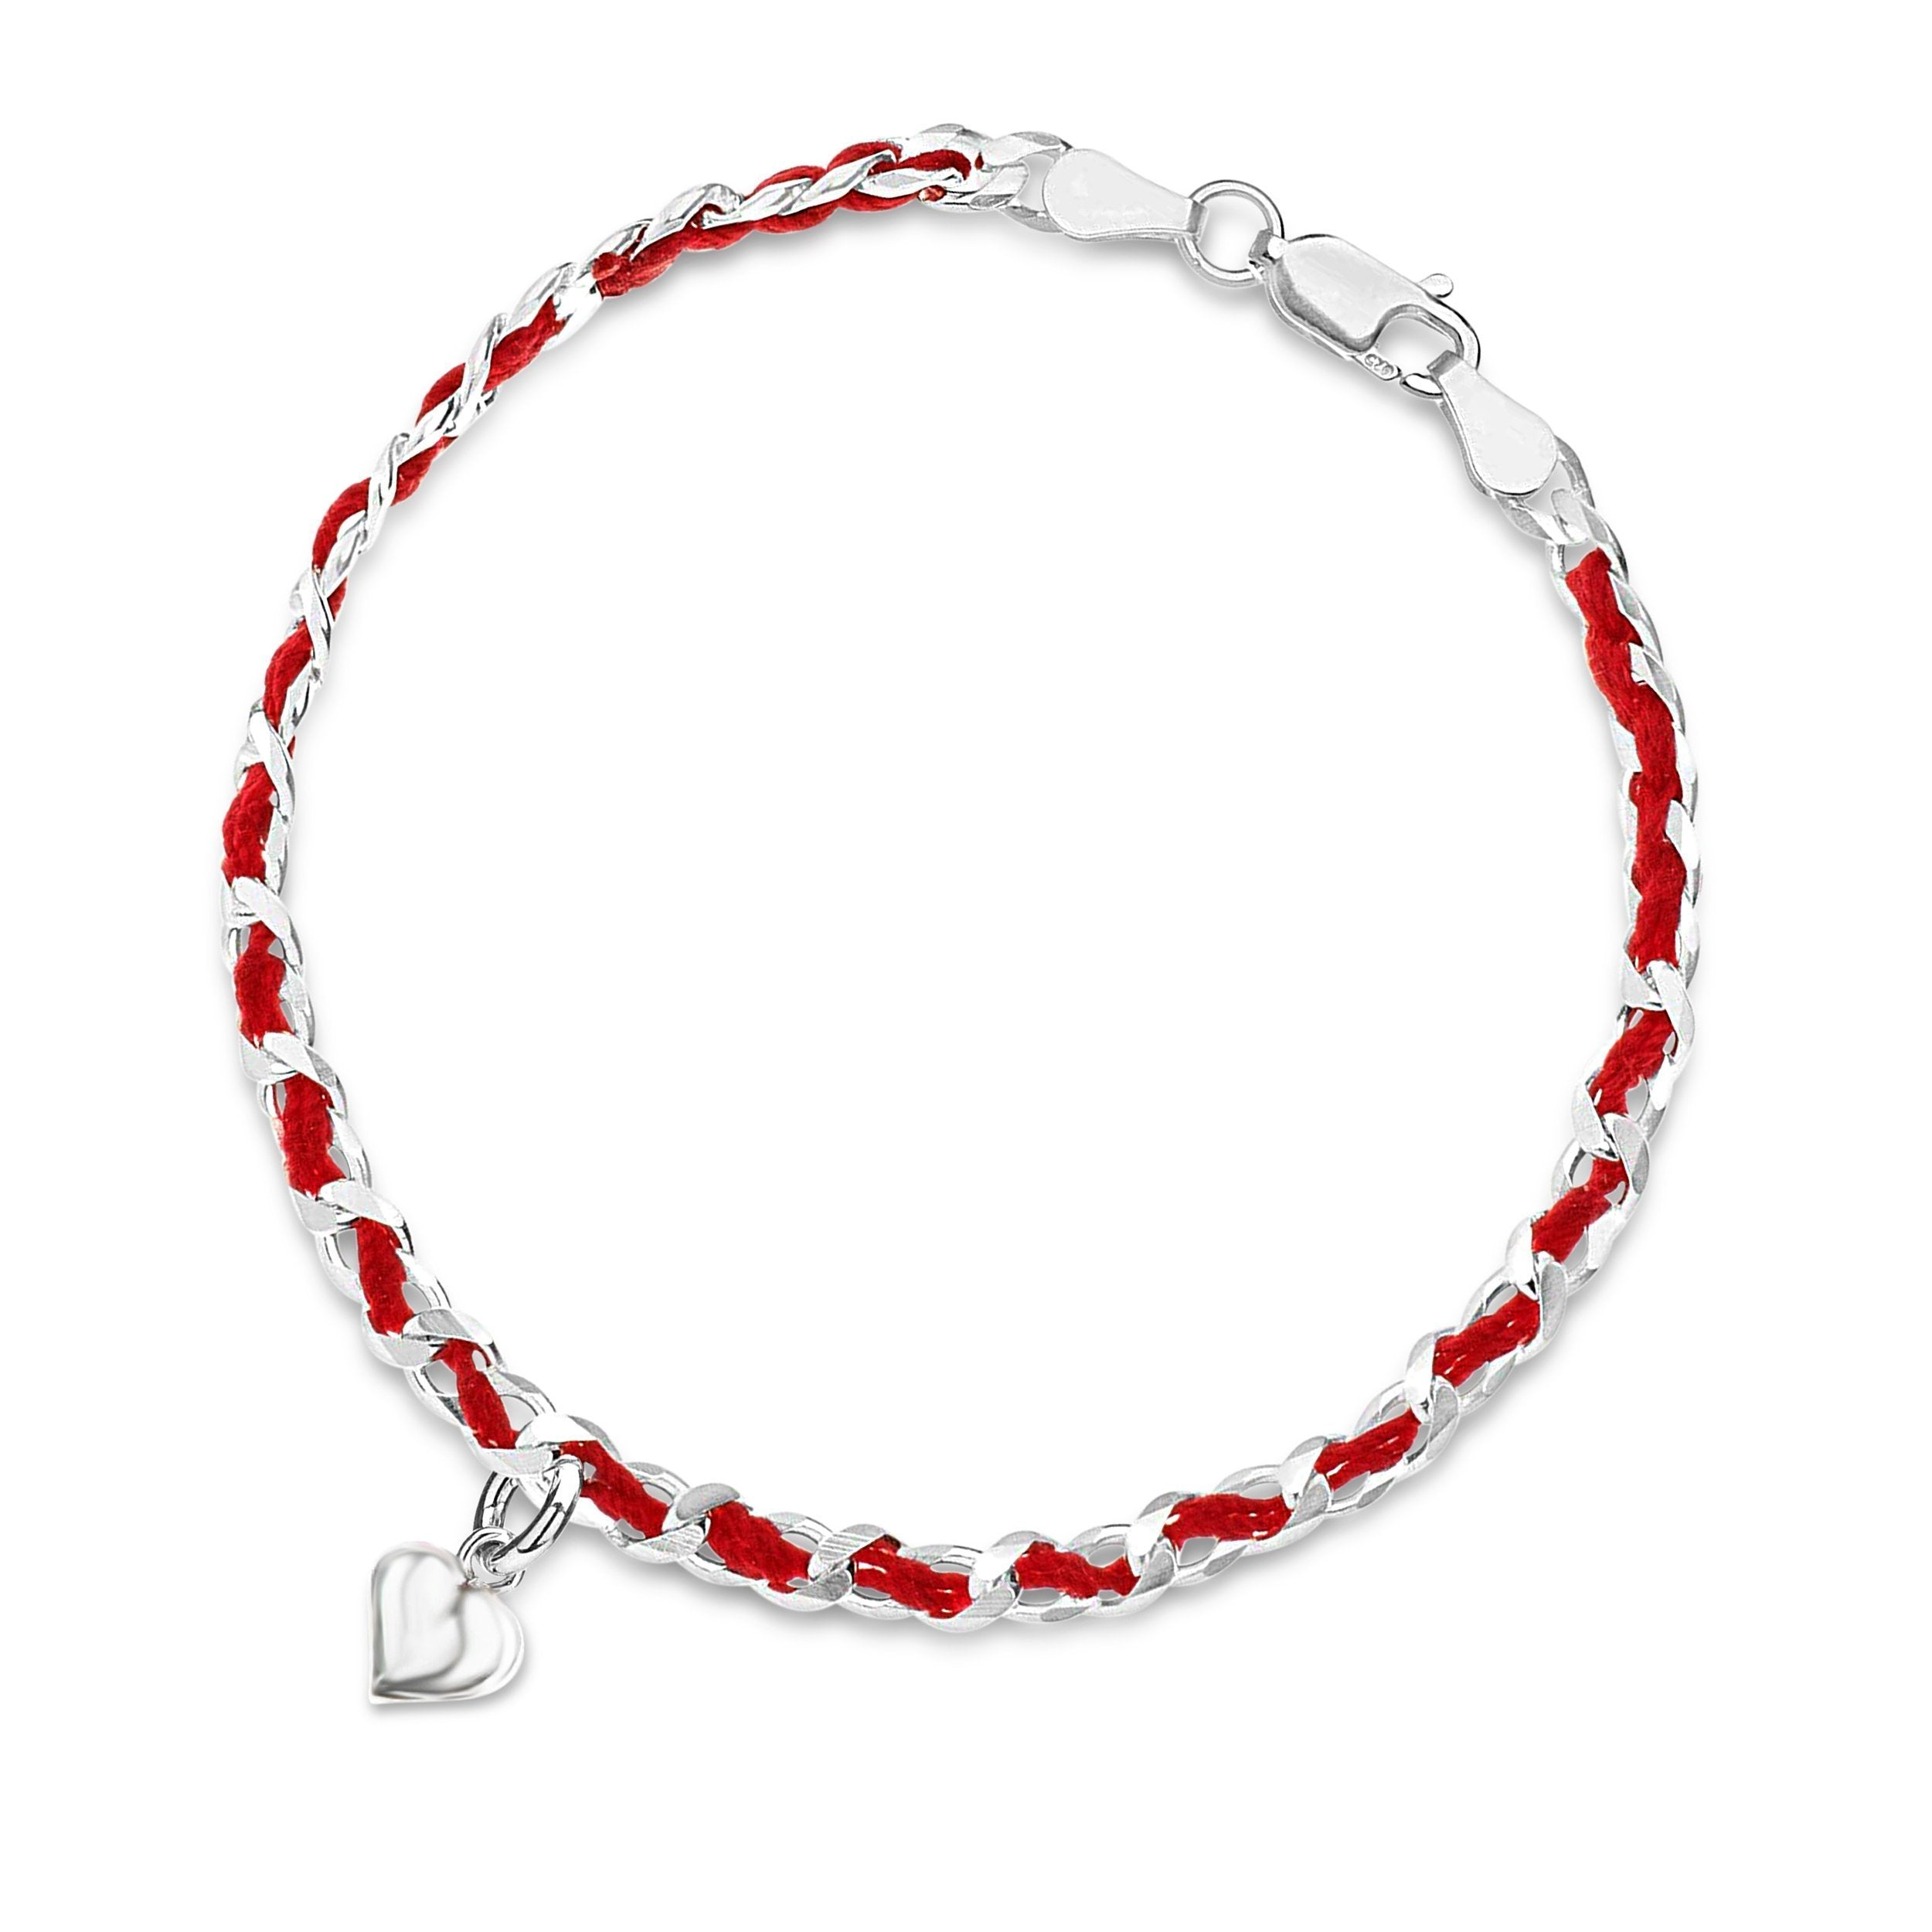 Red String Kaballah Love Bracelet with Heart in Silver